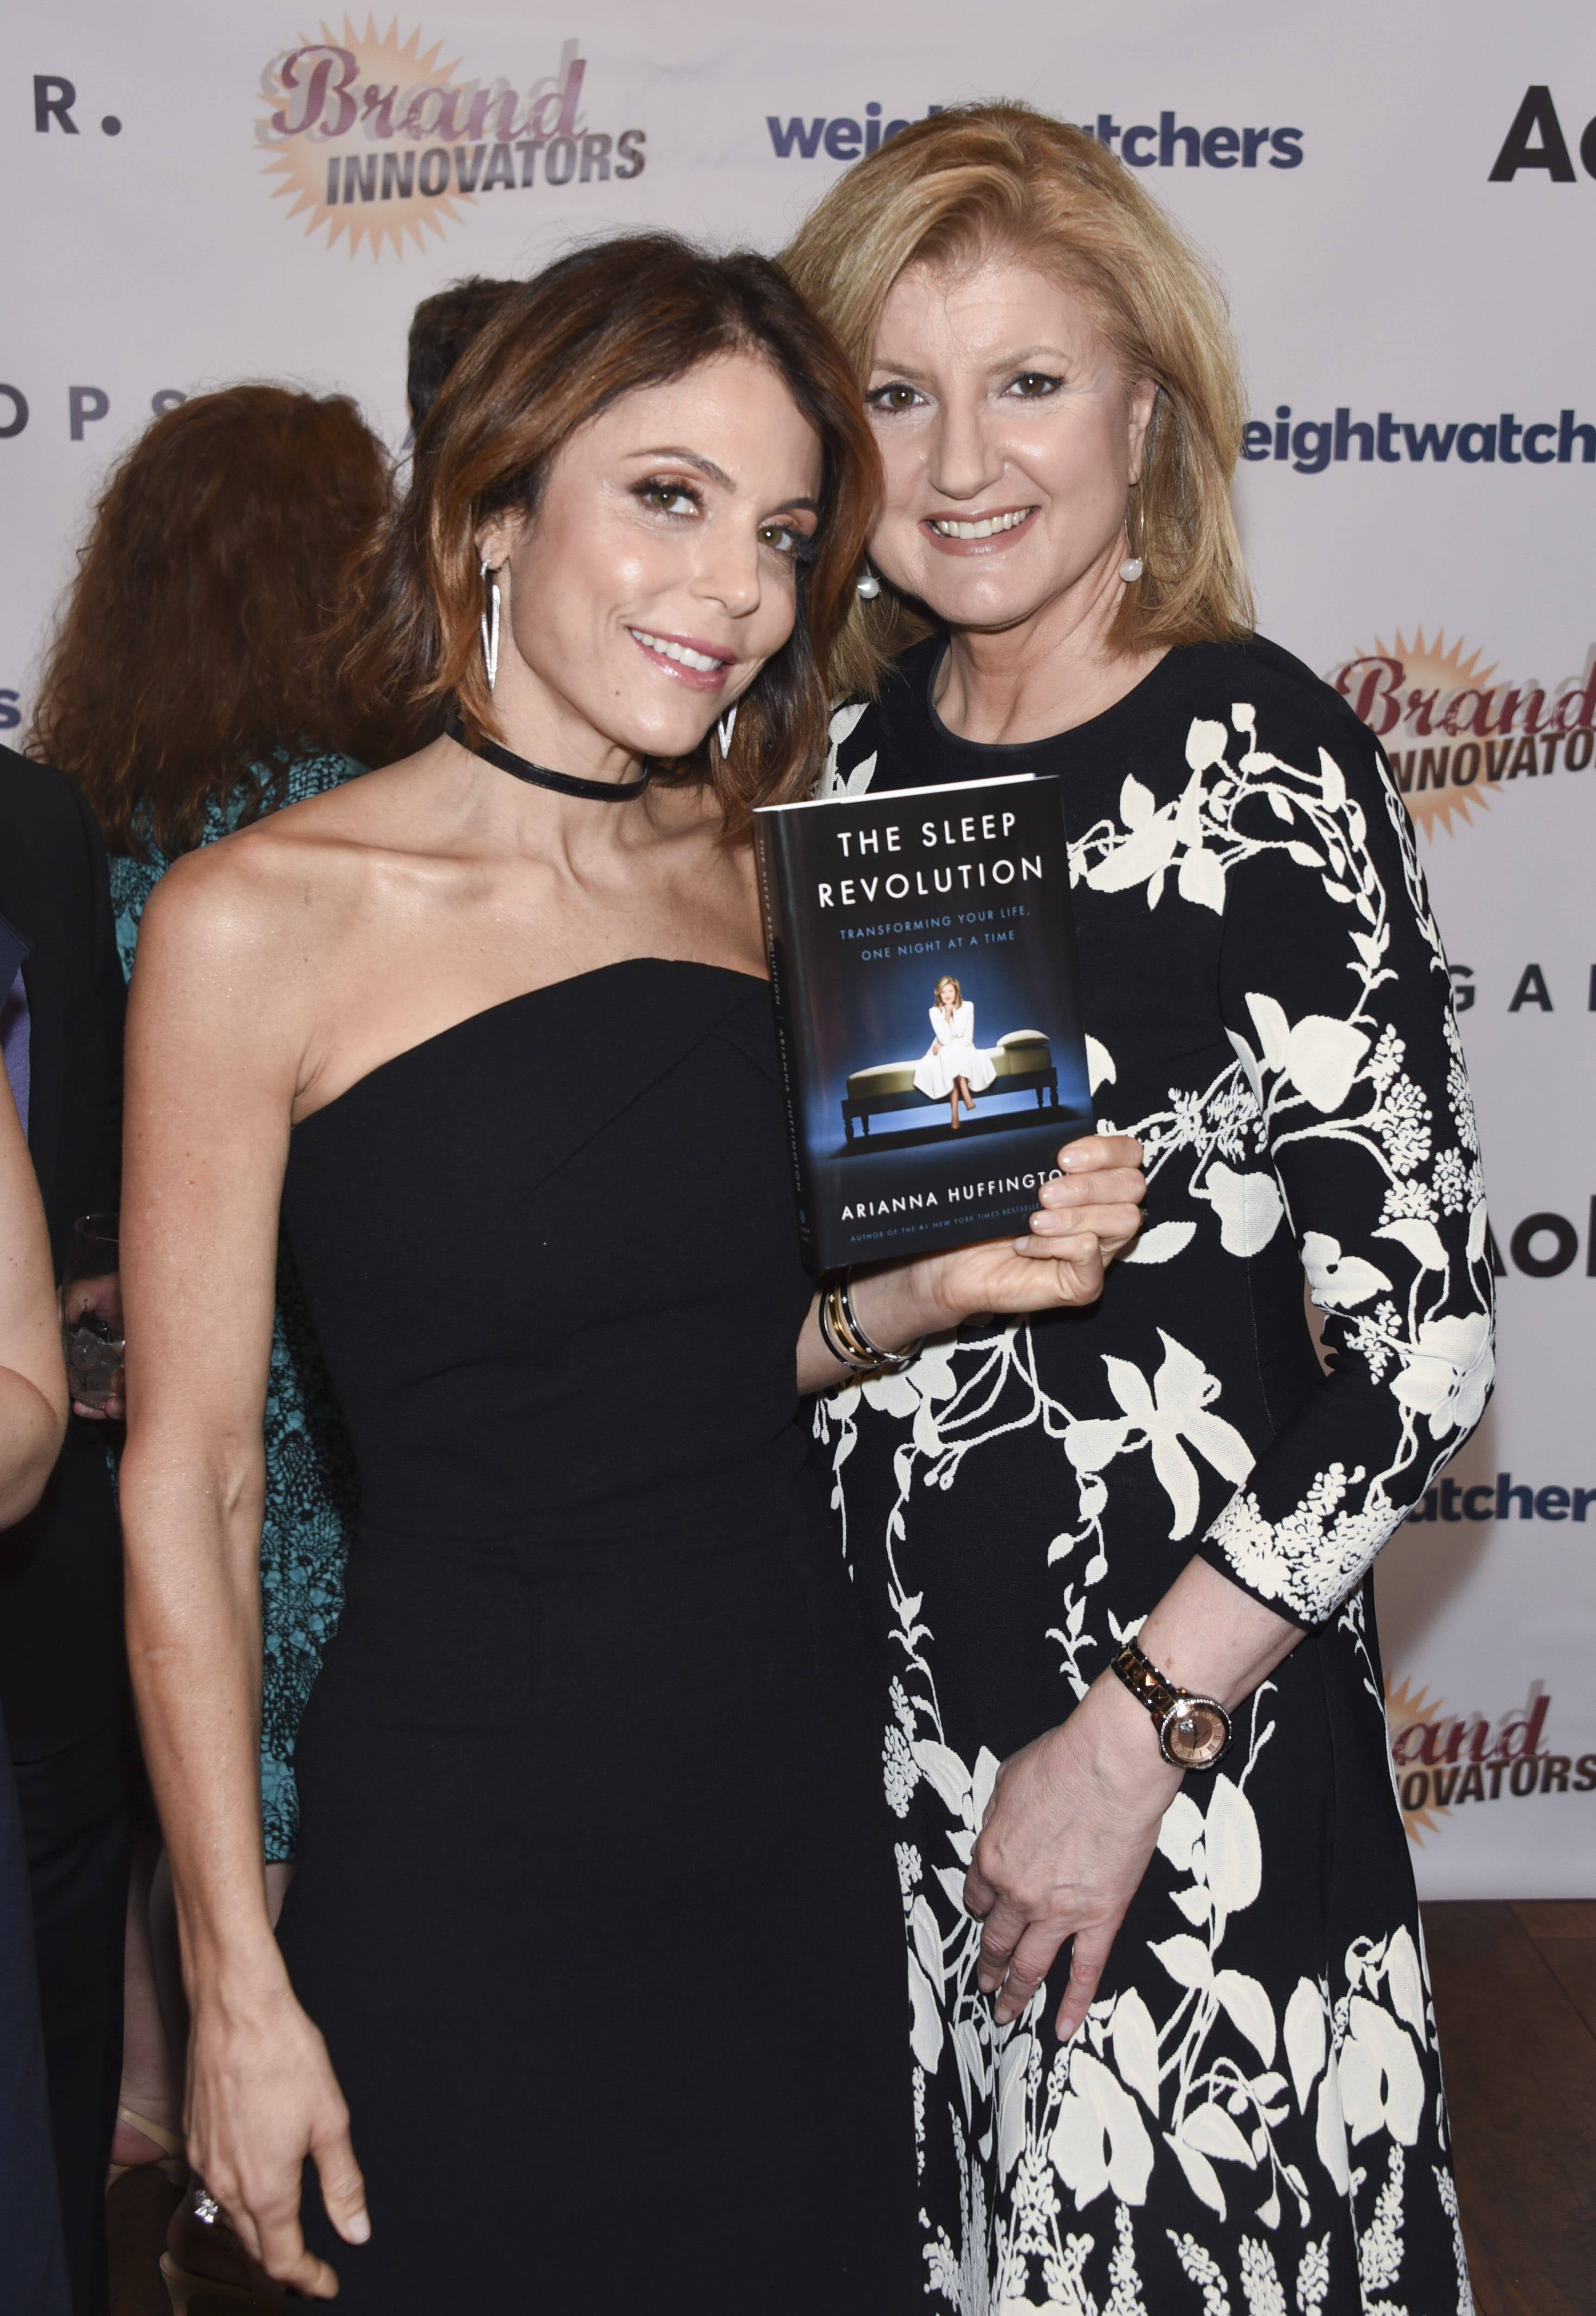 Bethenny Frankel and Arianna Huffington Celebrate Huffington's book The Sleep Revolution at Brand Innovators Top 100 Women in Brand Marketing at Santina in New York City. Pic by Michael Bezjian